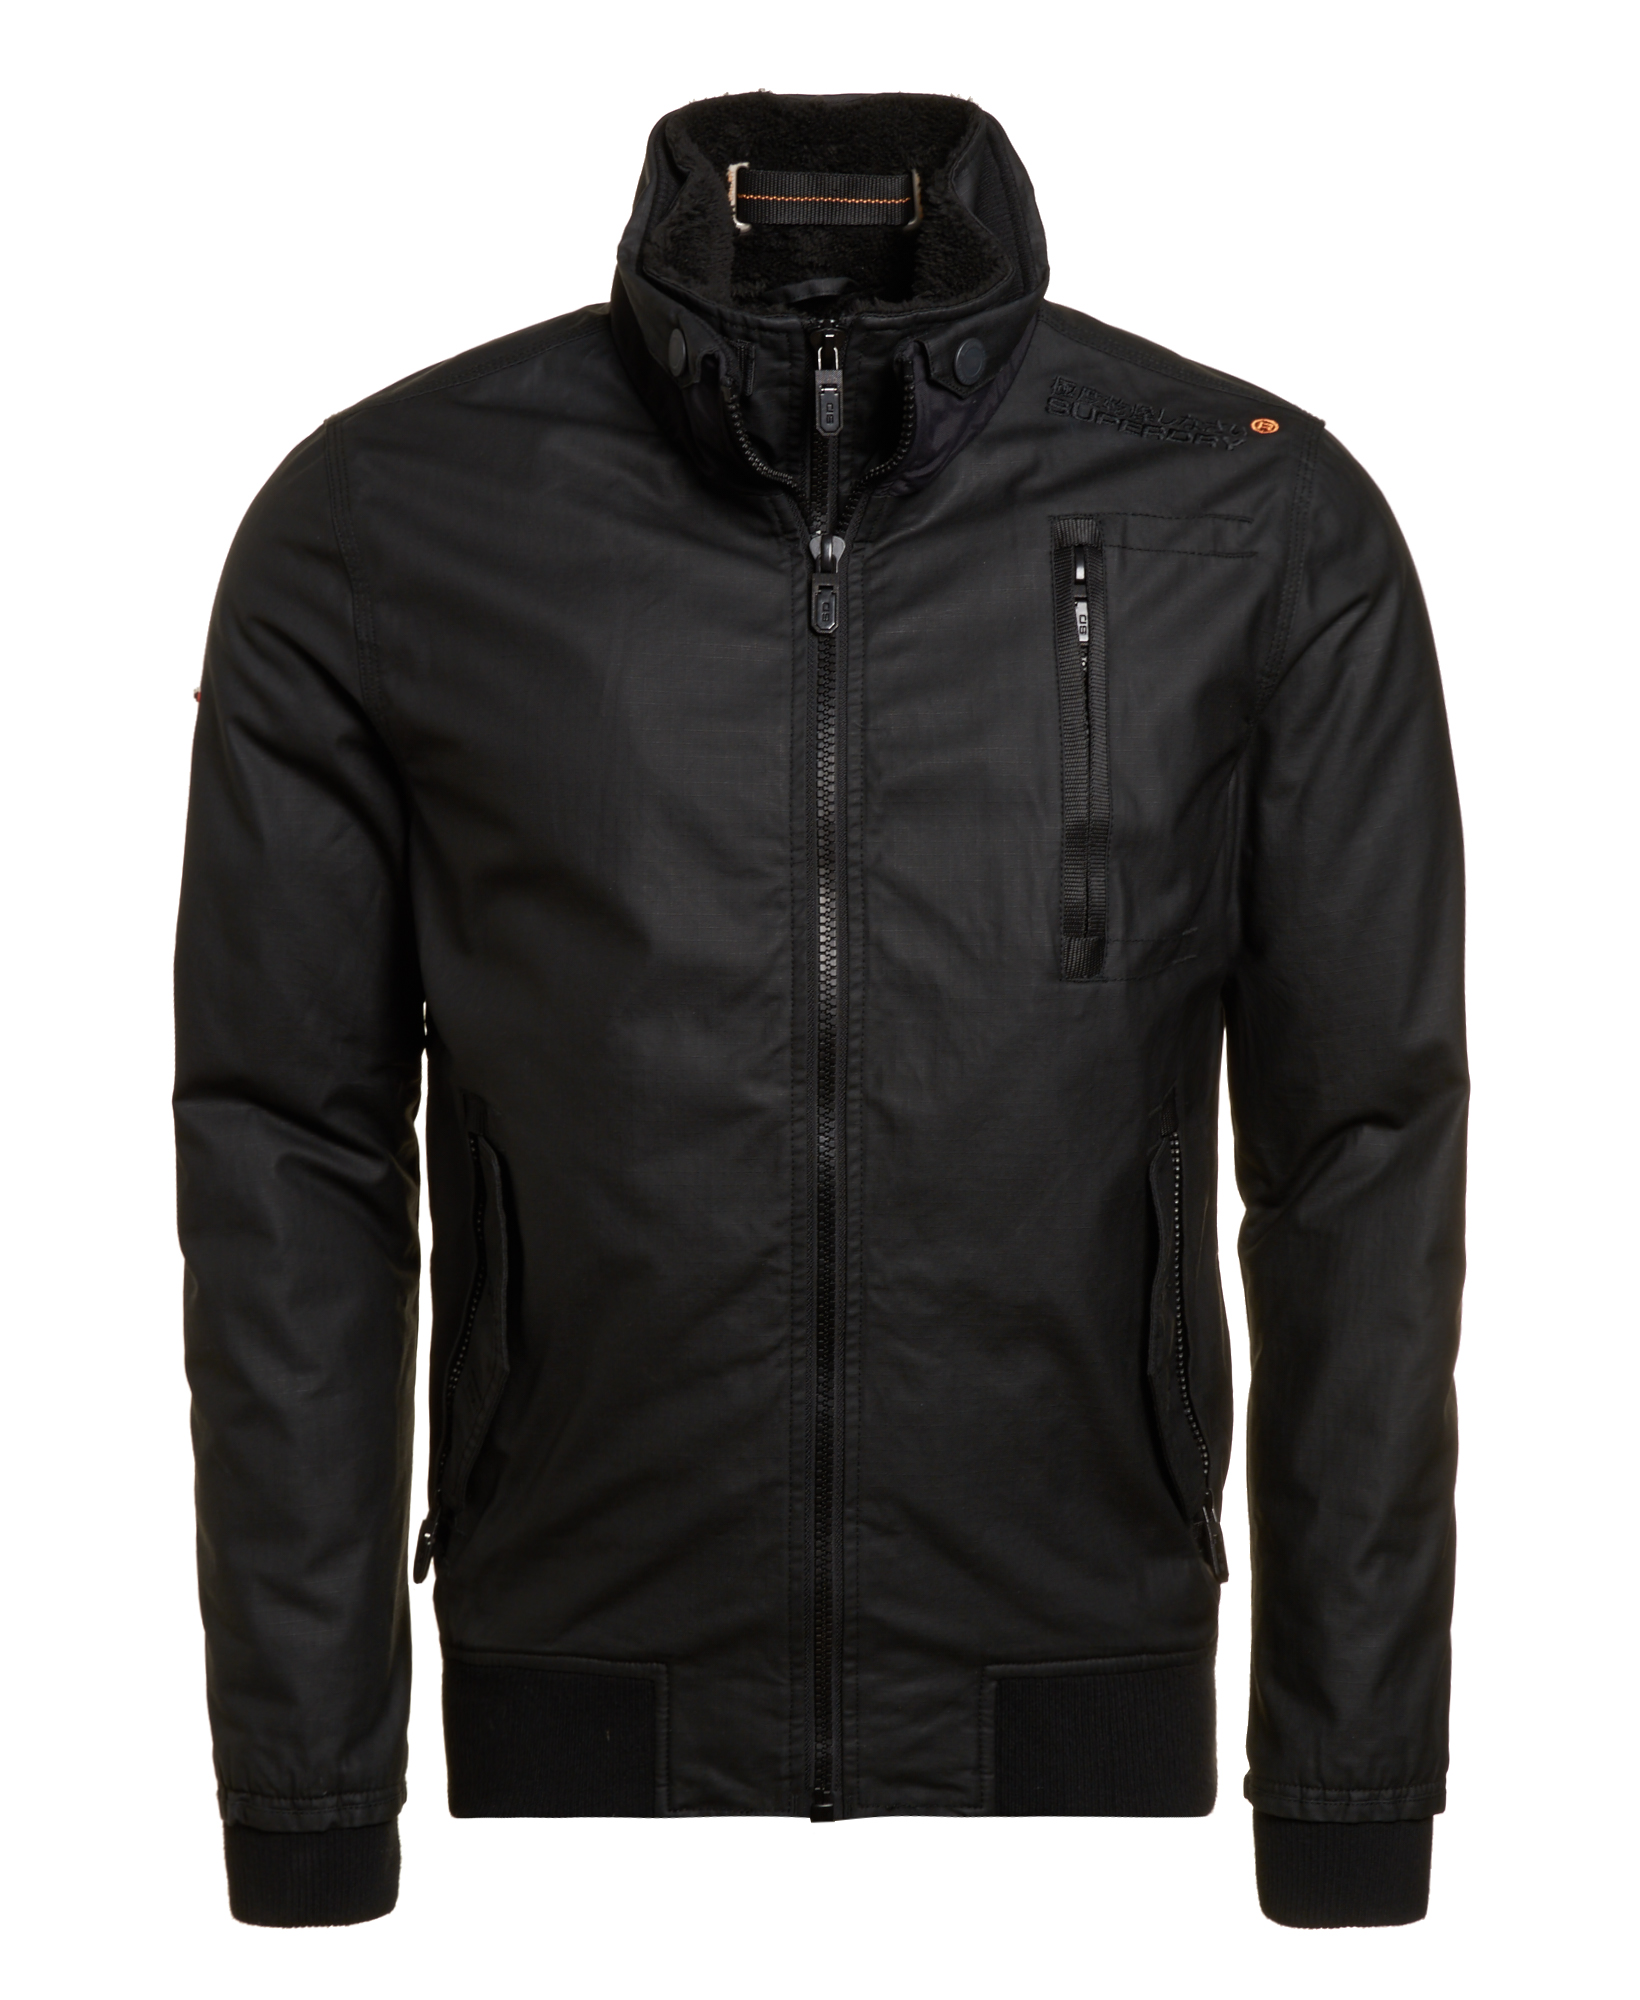 640086042 Details about New Mens Superdry Unique Sample Moody Ripstop Bomber Jacket  Size Small Black